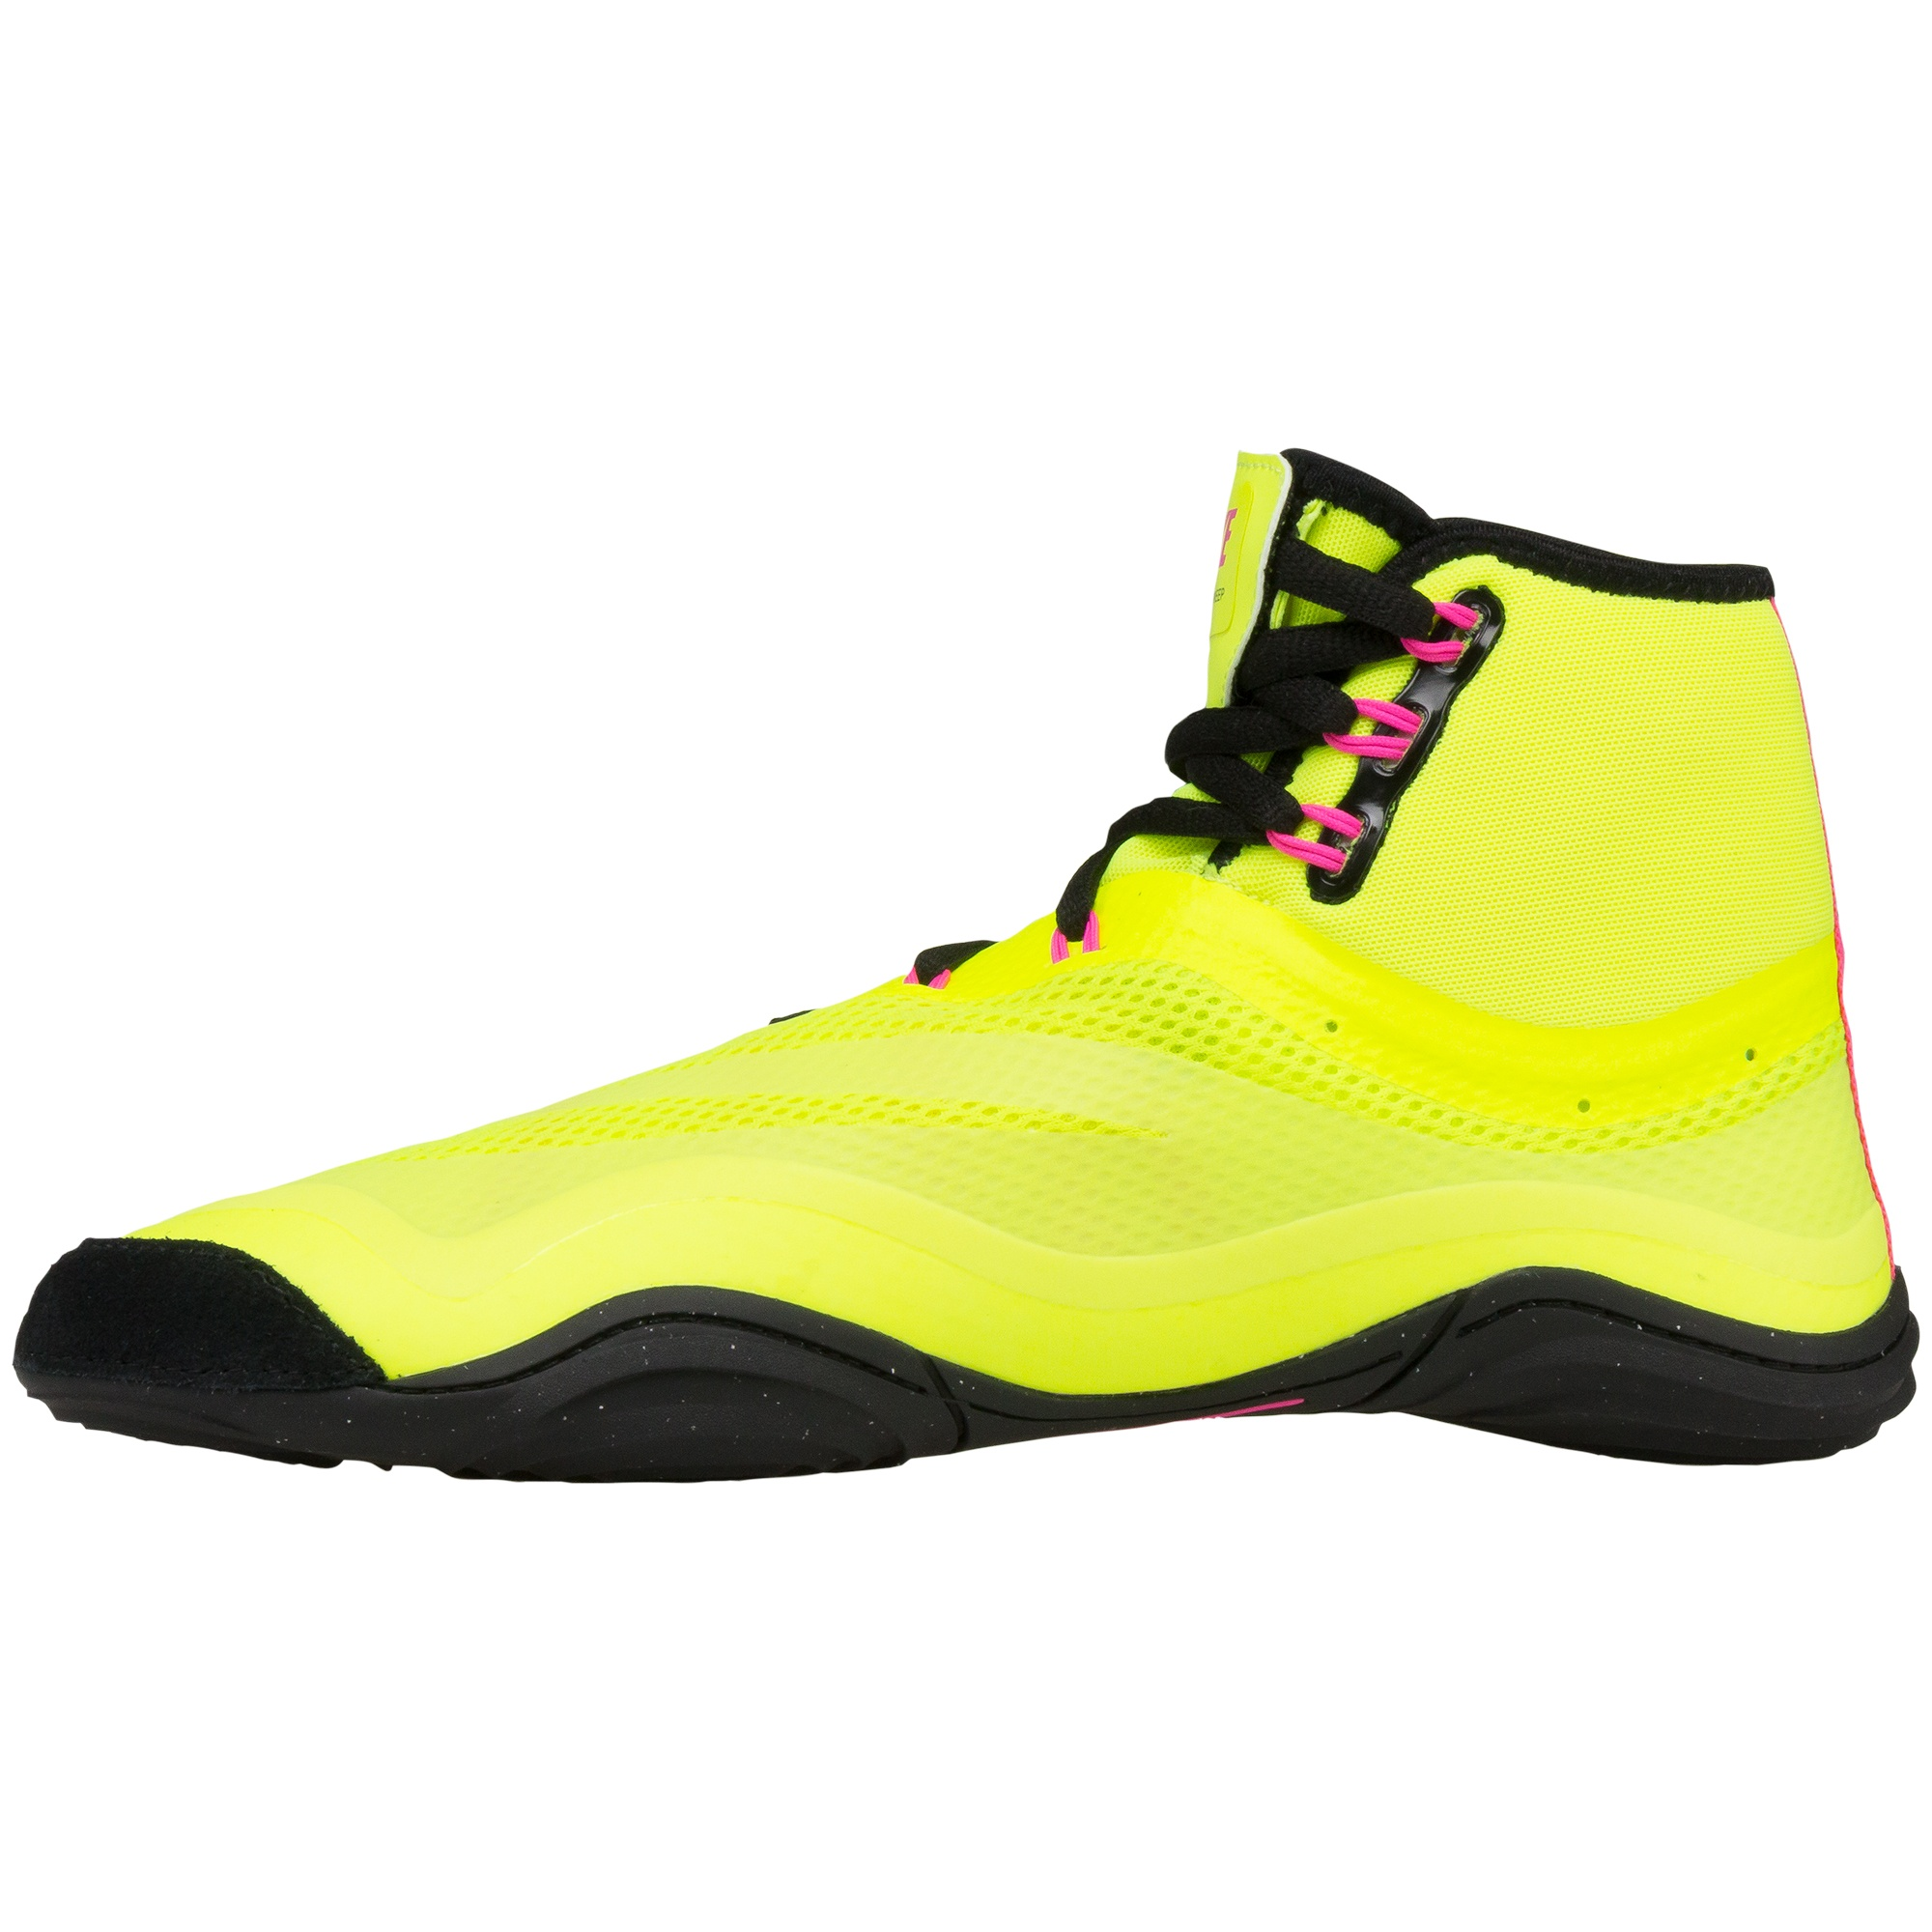 Nike Hypersweep Unlimited Shoes  76f9c030e